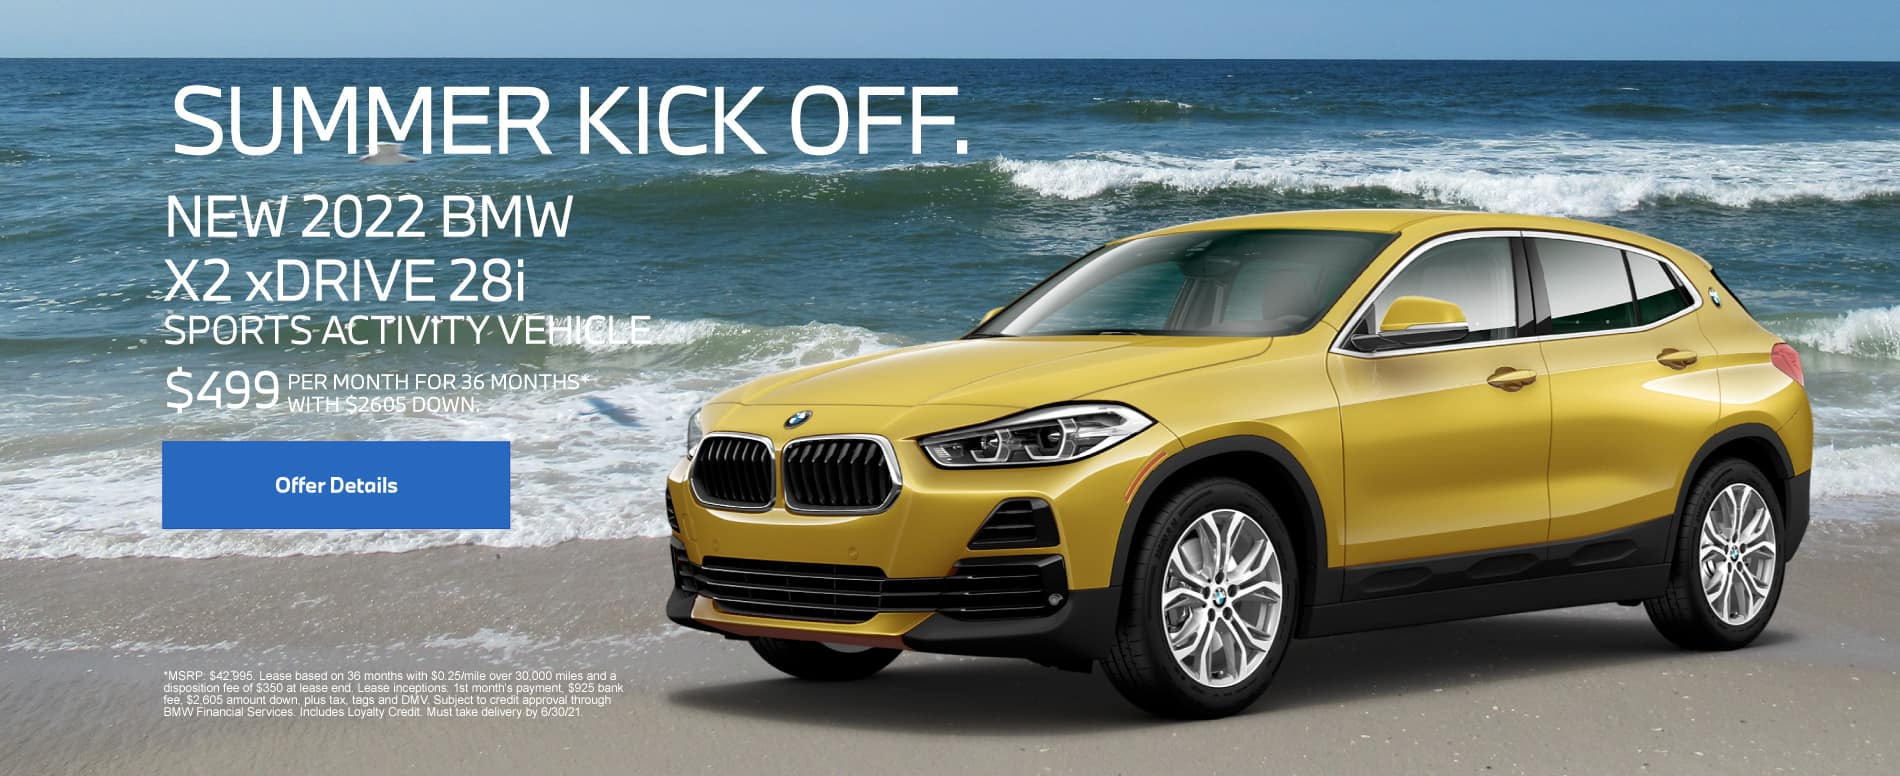 2022 BMW X2 xDrive28i Sports Activity Vehicle - $499 per month for 36 months With $2605 down*